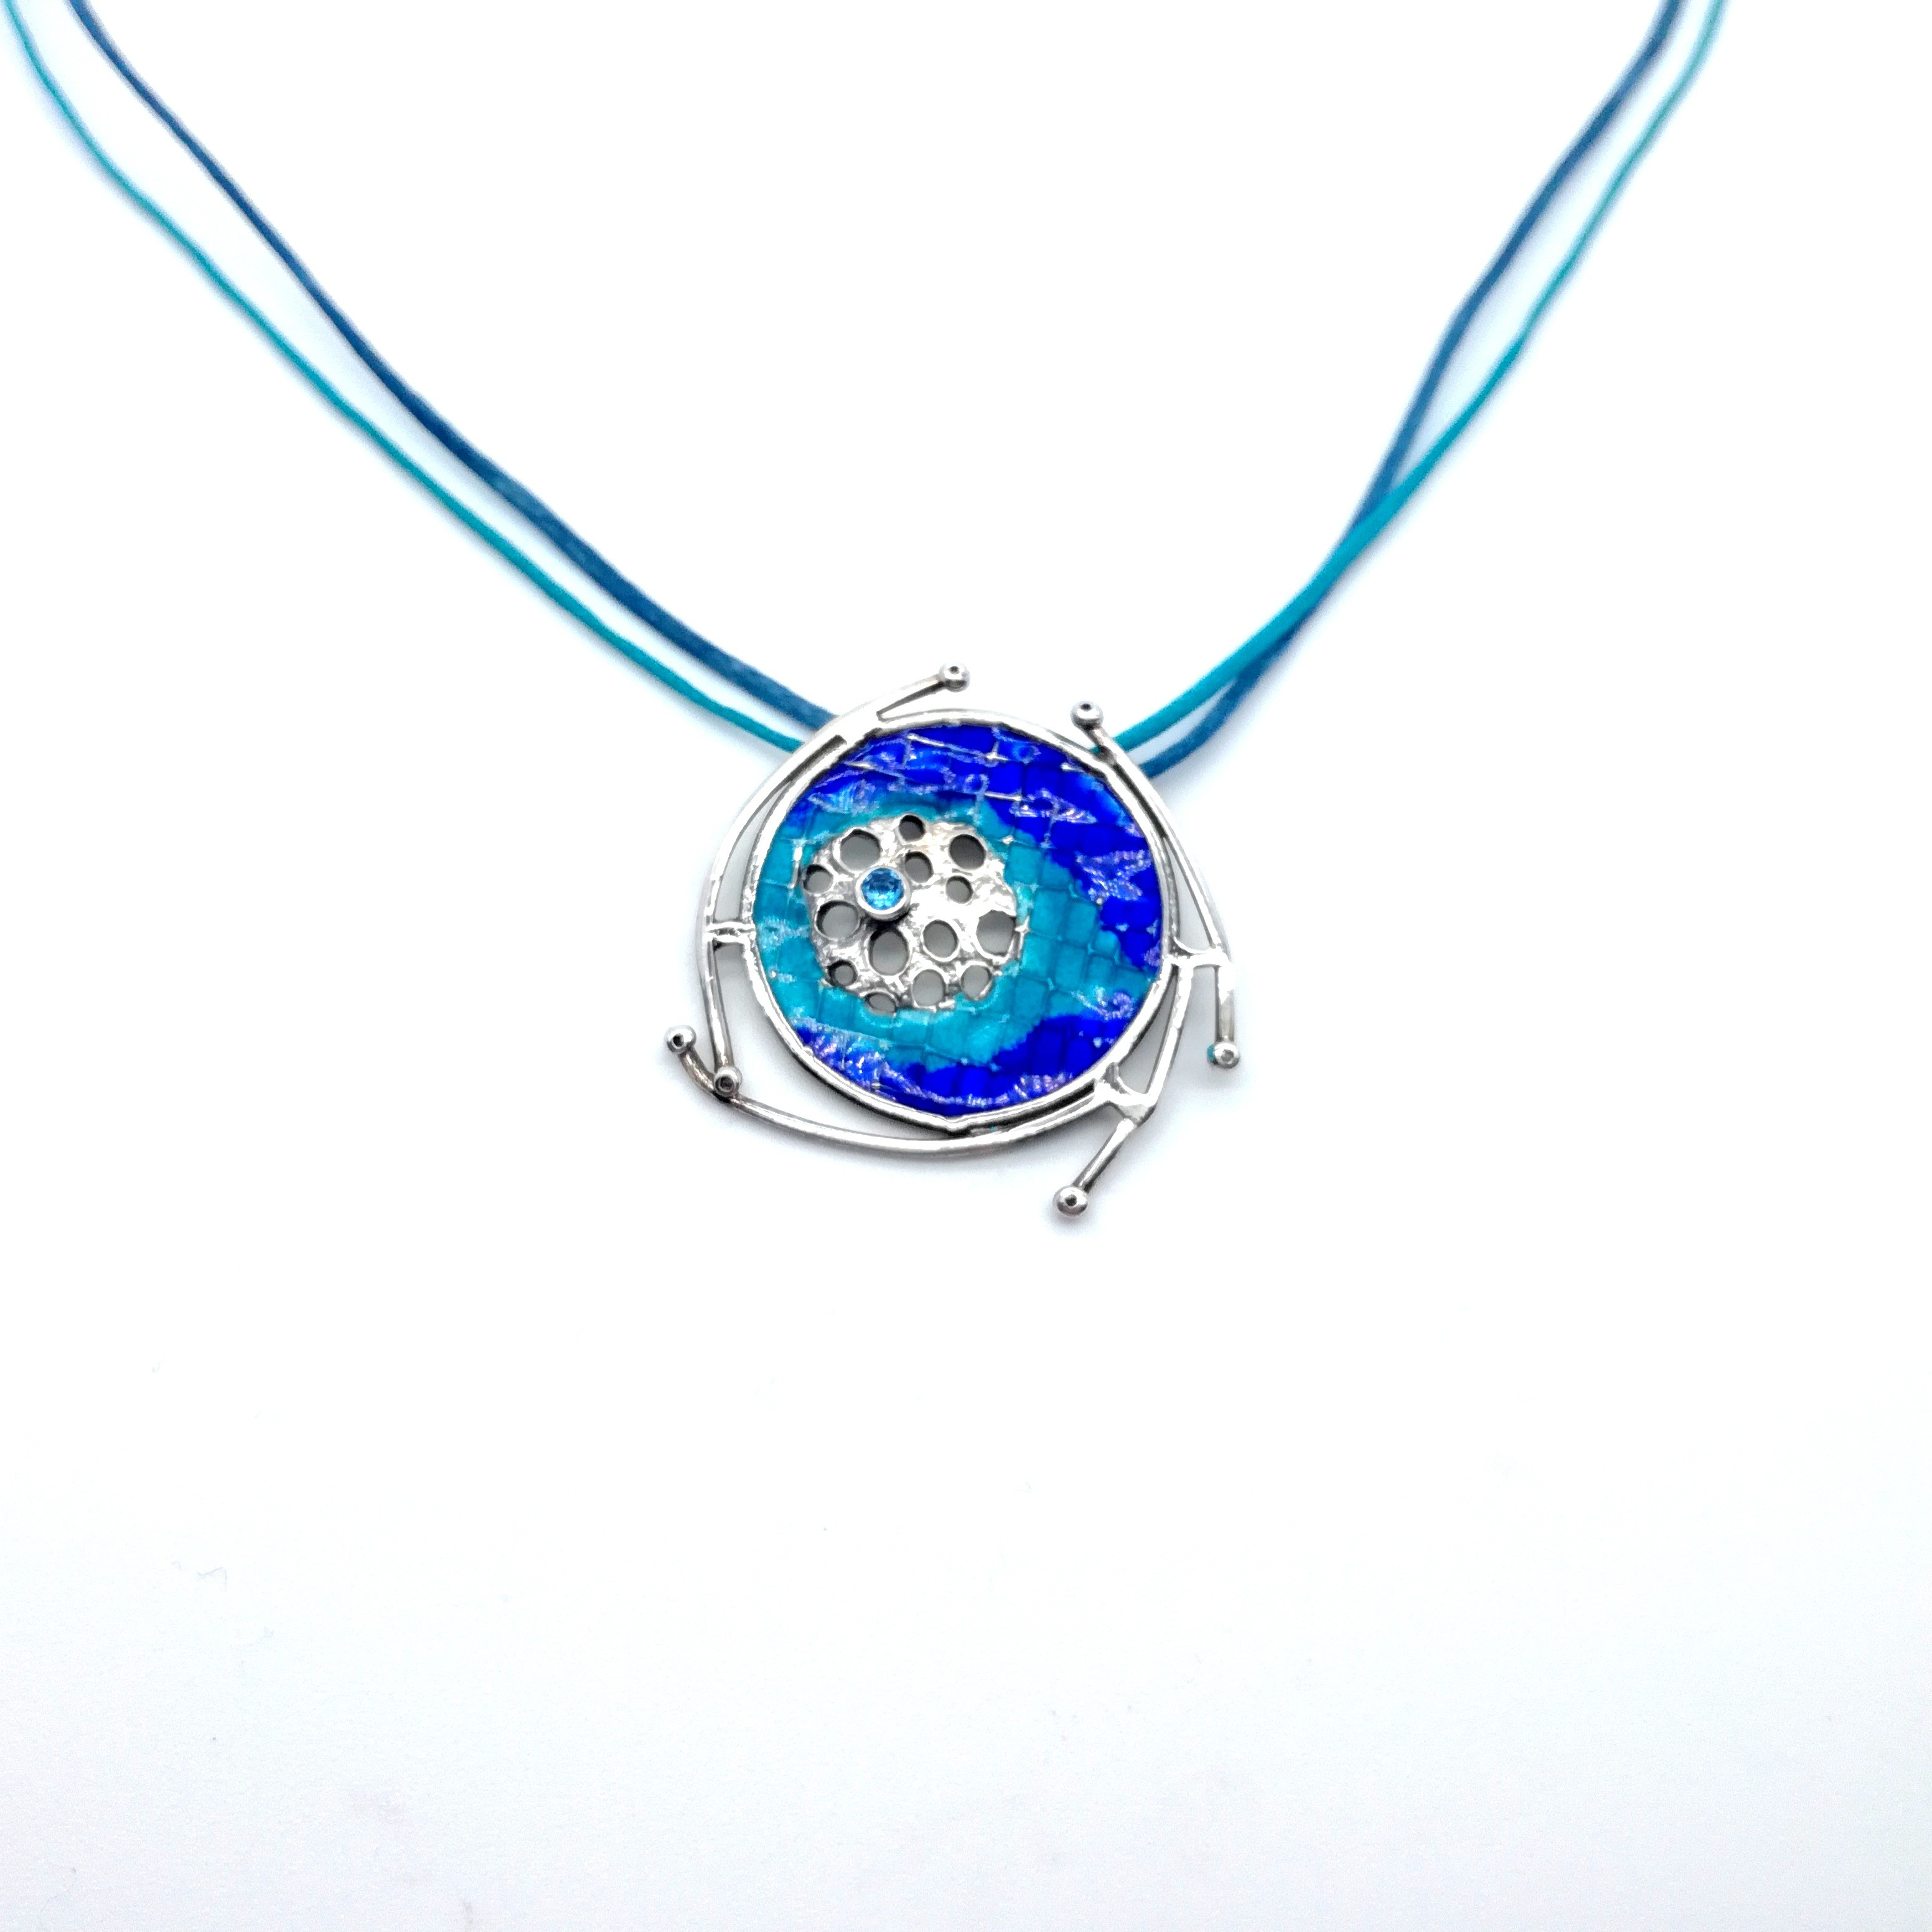 Silver pendant 925 with enamel and synthetic stones